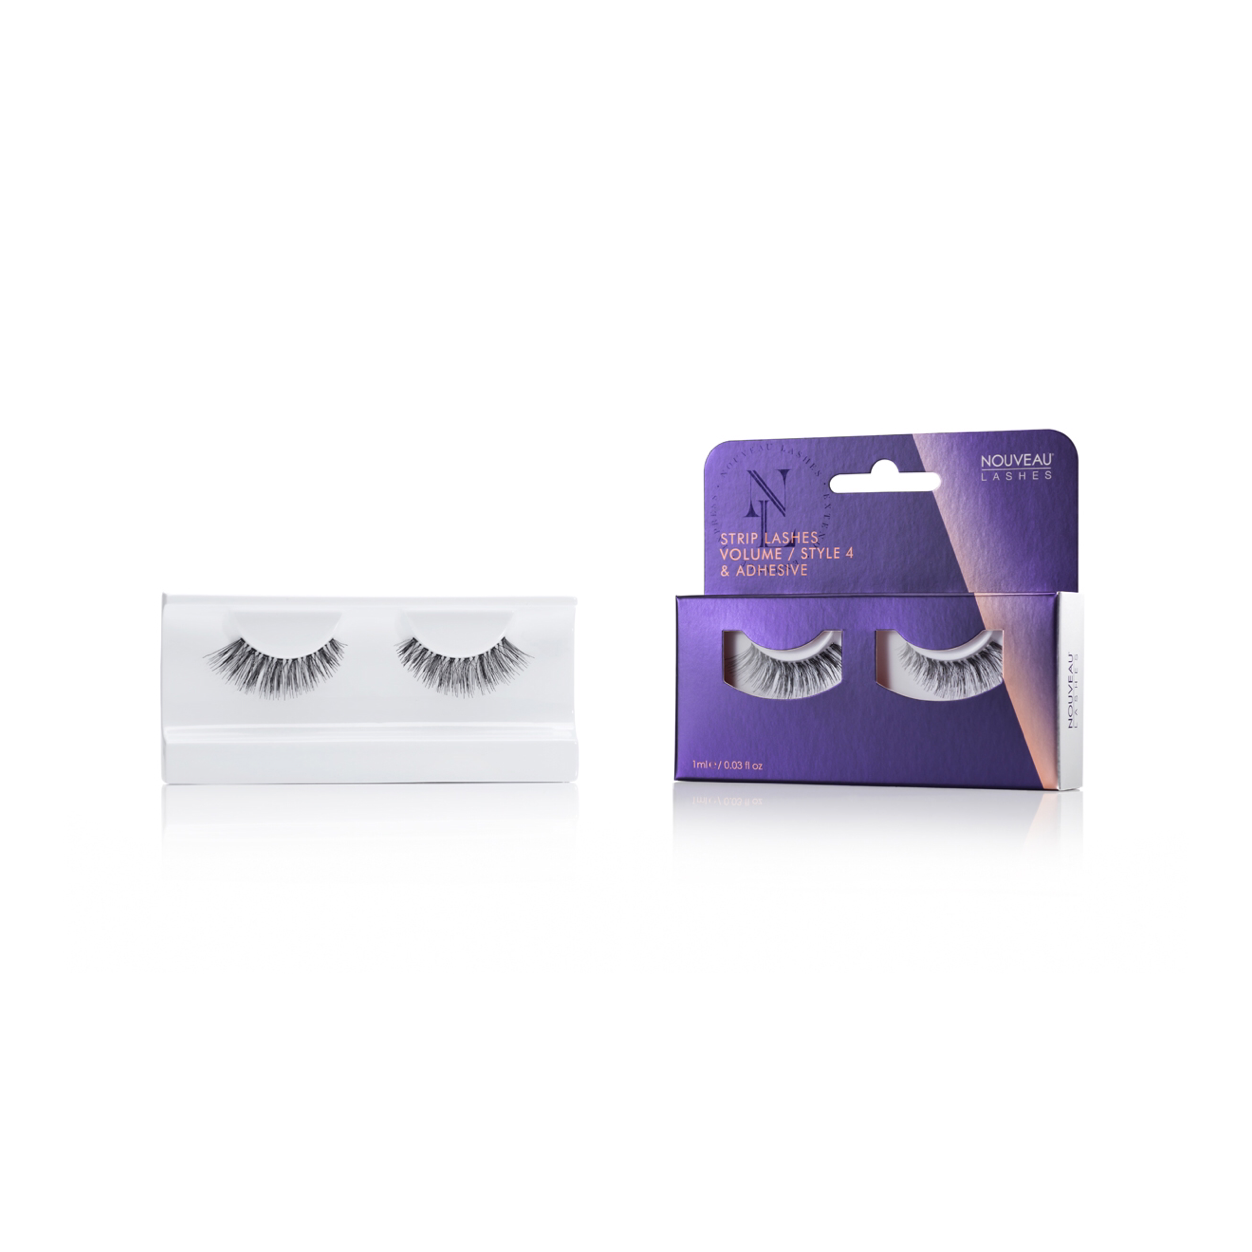 Nouveau Strip Lashes Volume Style 4